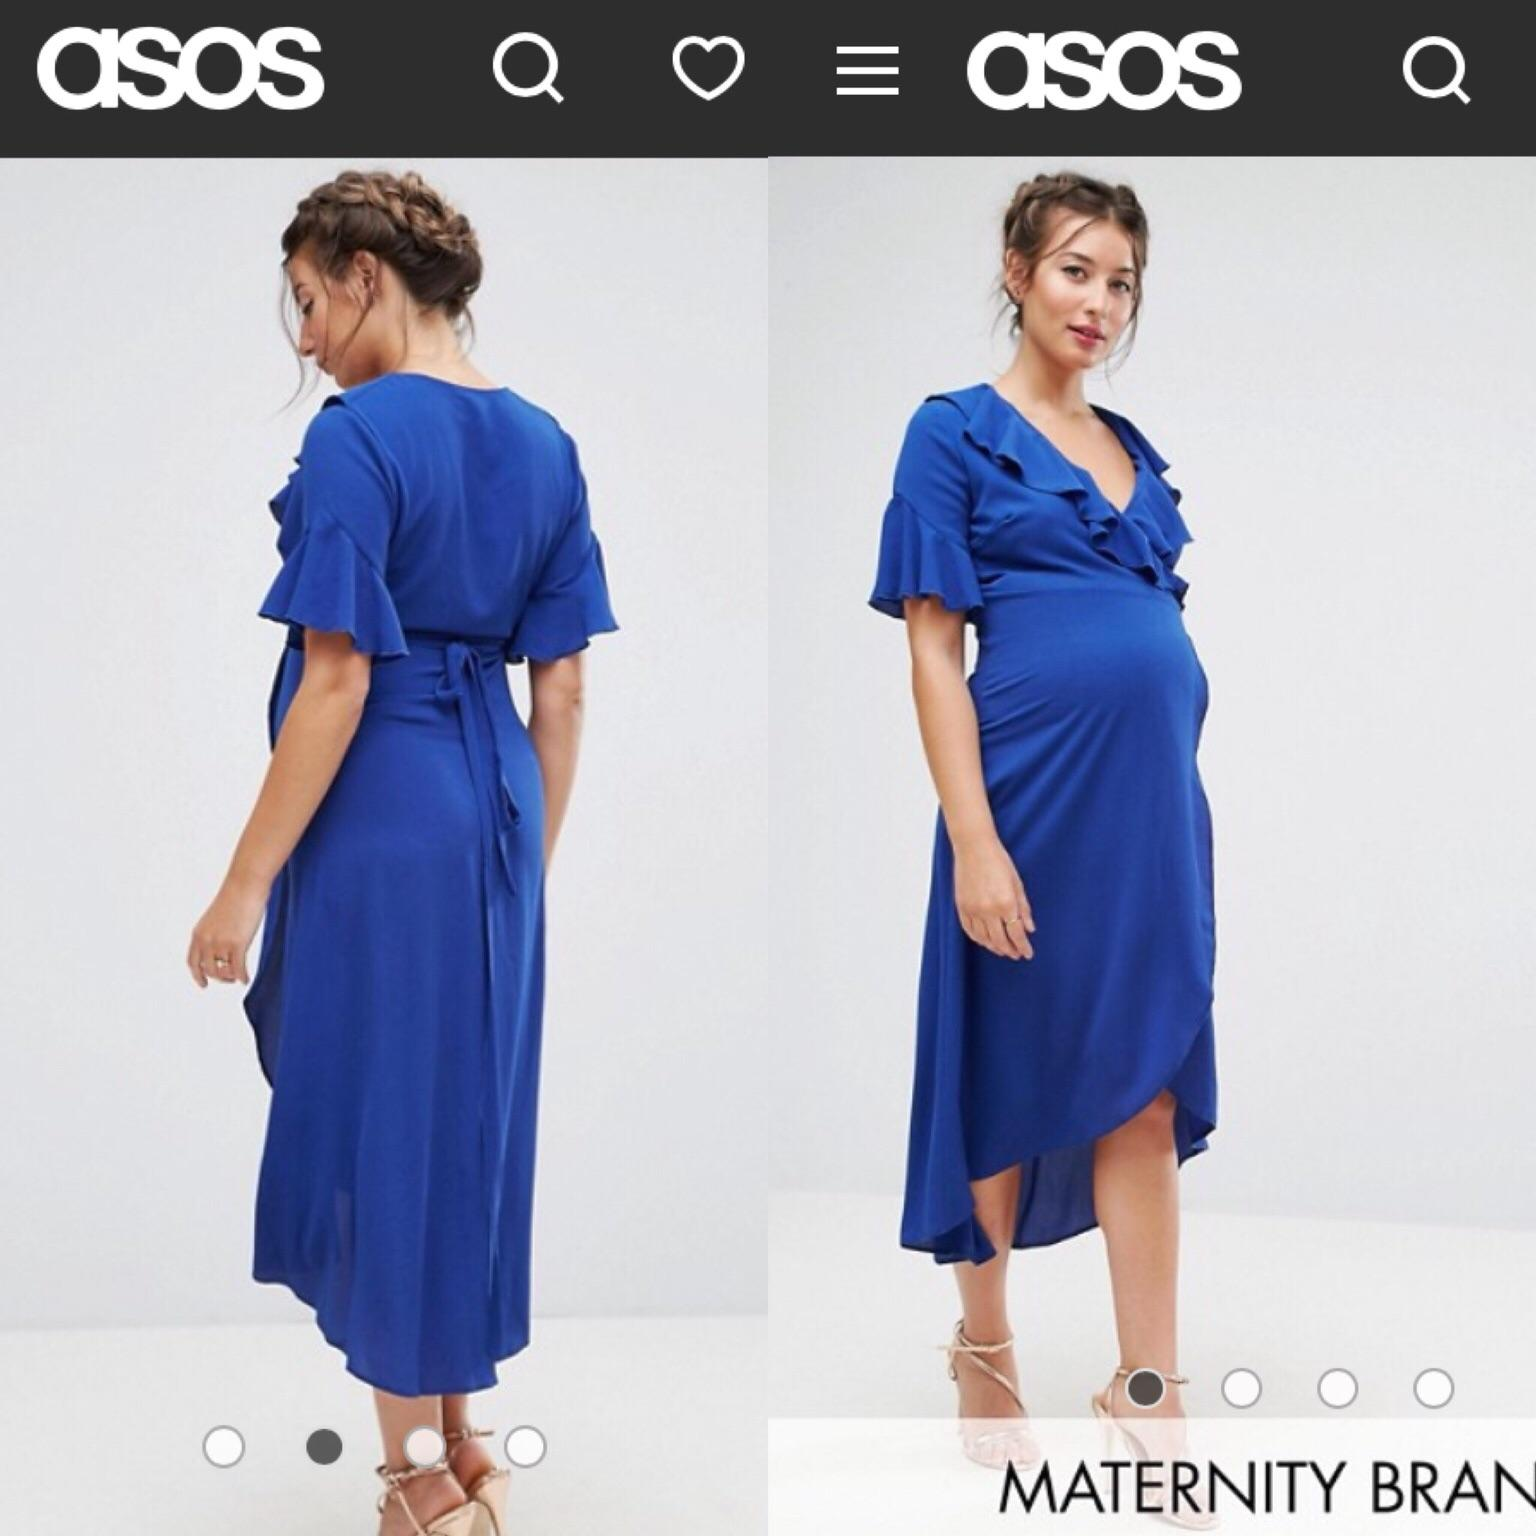 a7bb0431ebf76 ASOS Queen Bee Blue Maternity Wrap dress in for £20.00 for sale - Shpock